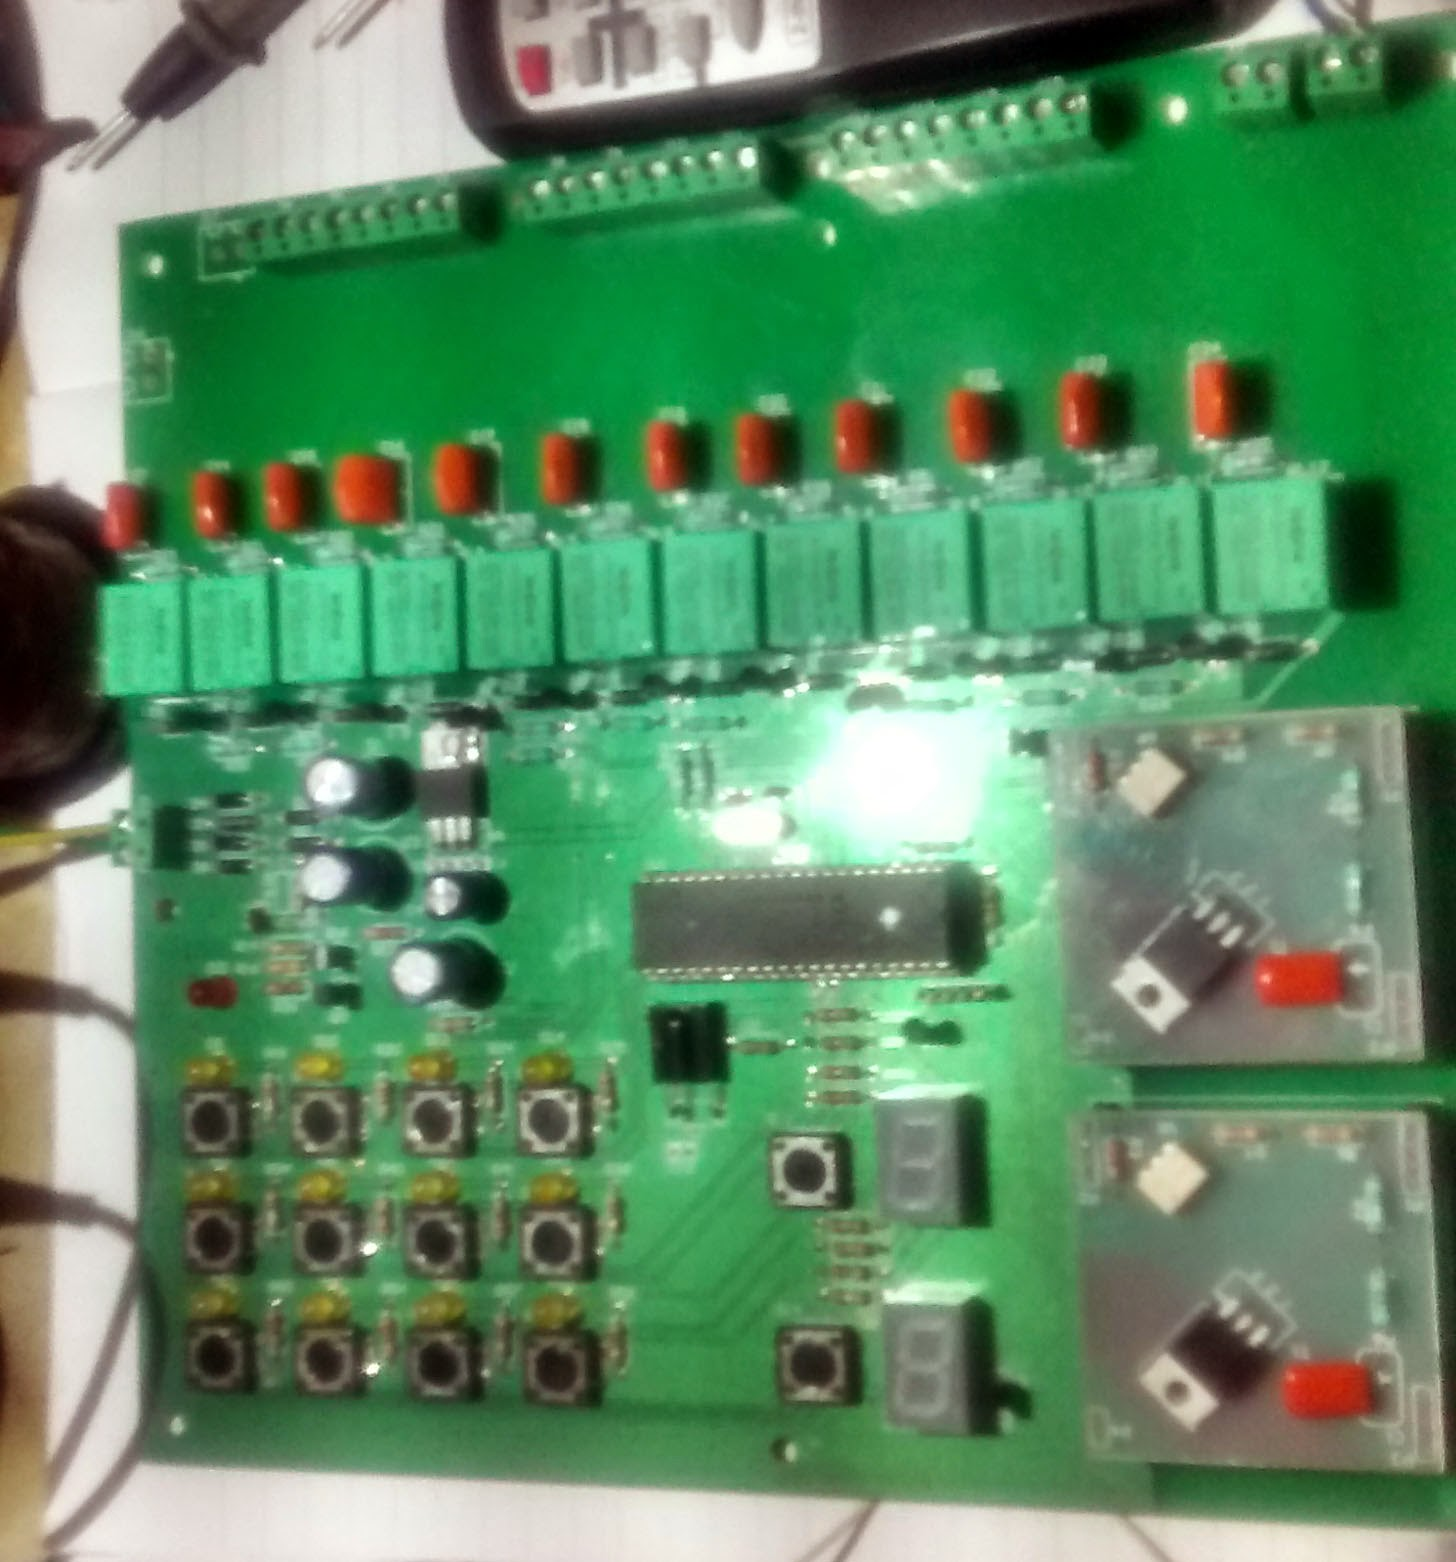 NEC Protocol IR (Infrared) Remote Control With a Microcontroller 17